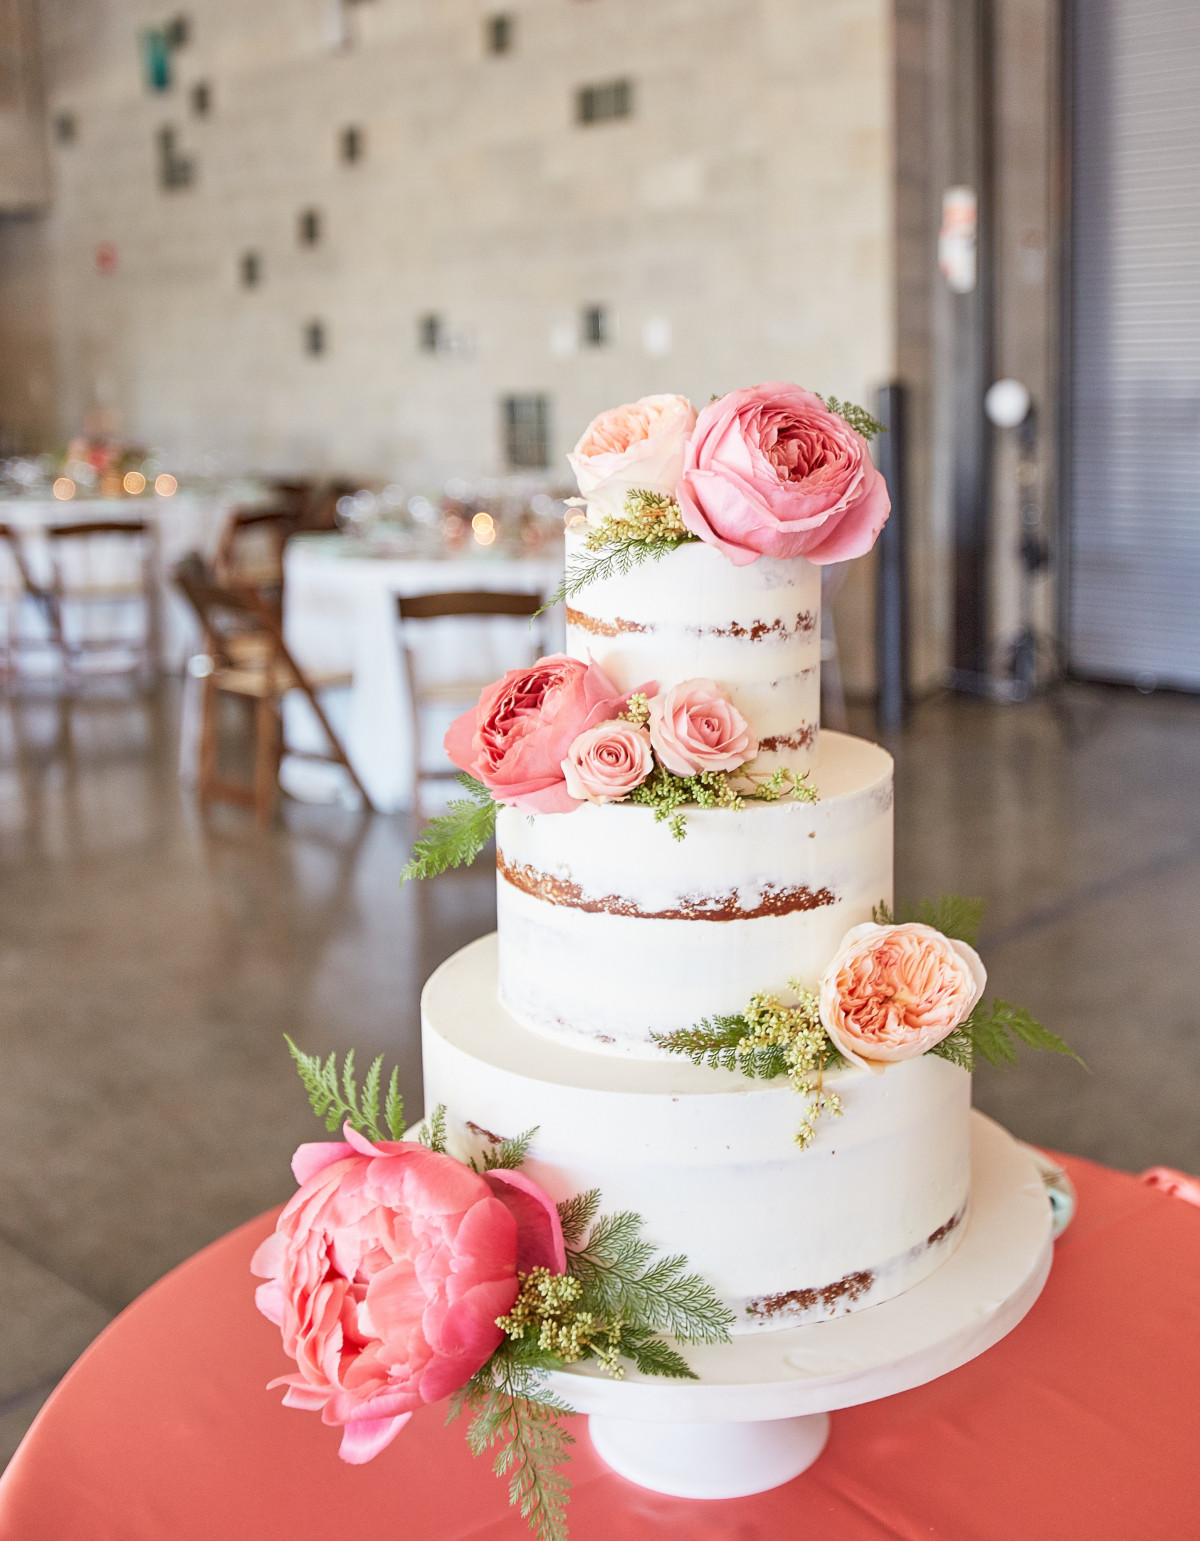 Three Tier Semi-Naked Wedding Cake with Pink Flowers